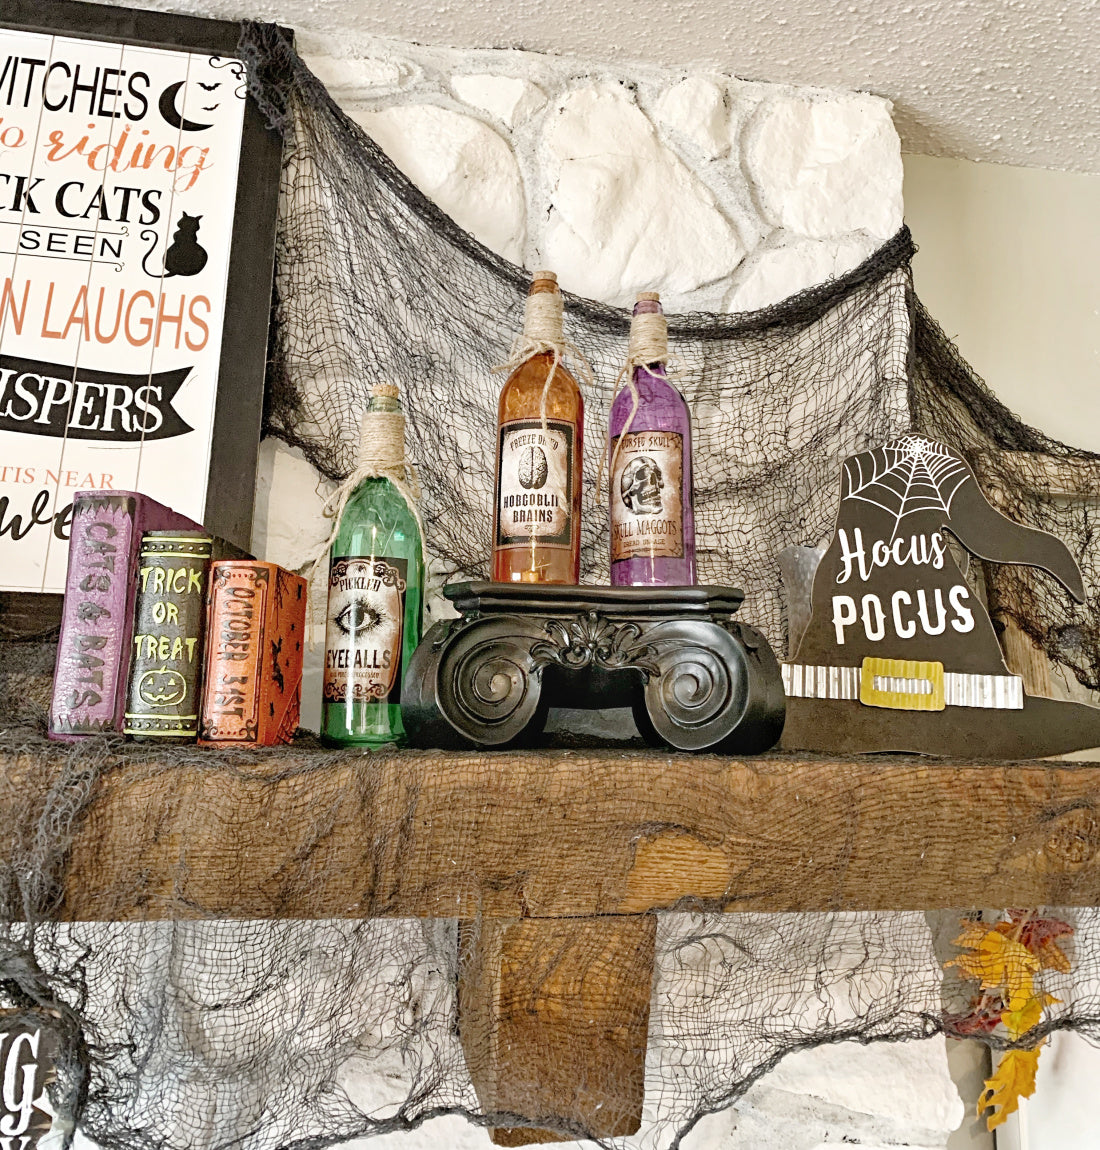 This décor may cause creatures of the night to come to your door